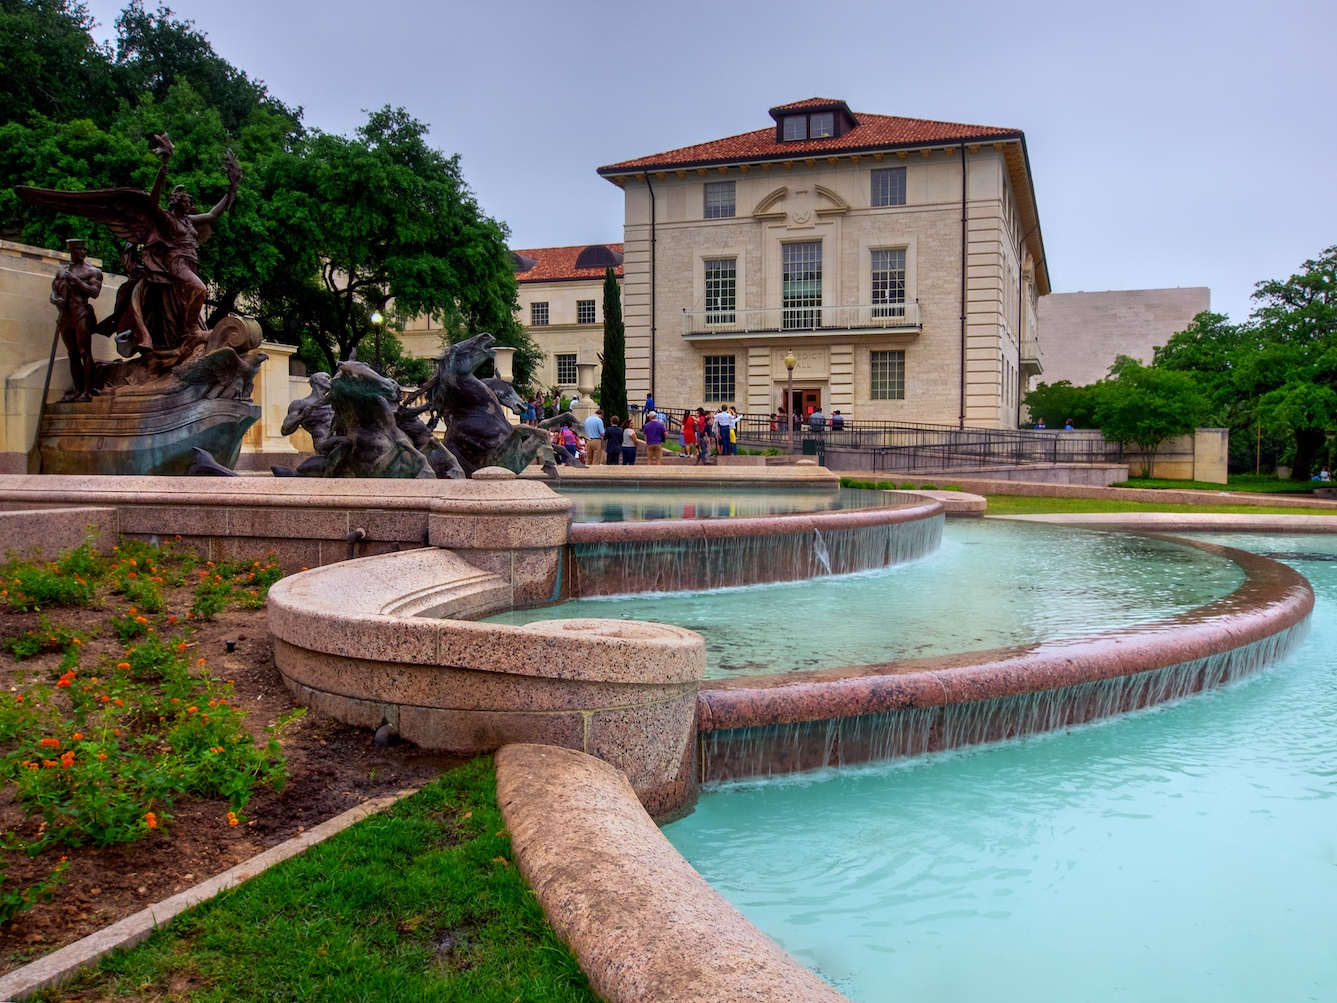 Littlefield Fountain, a well-known spot on the University of Texas at Austin campus.